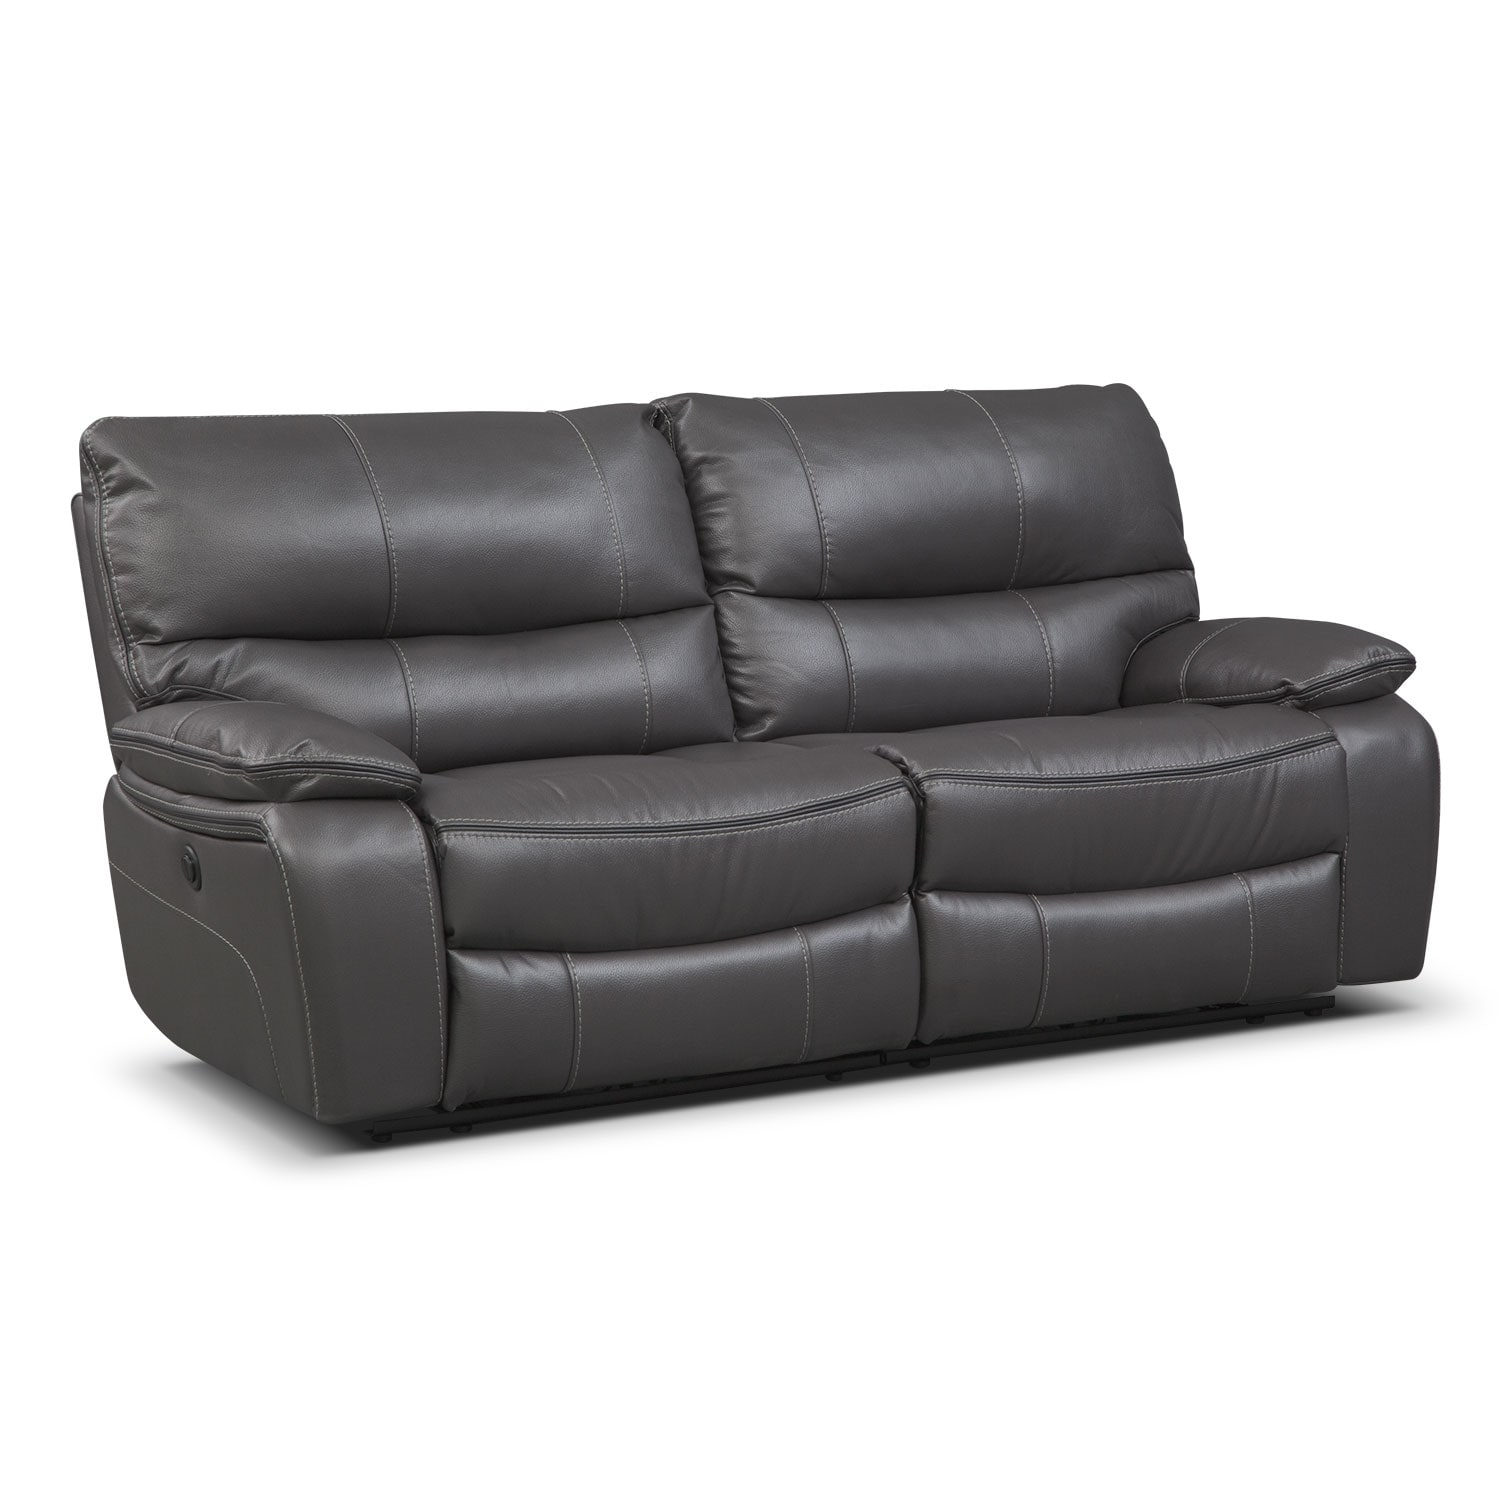 Orlando Power Reclining Sofa - Gray